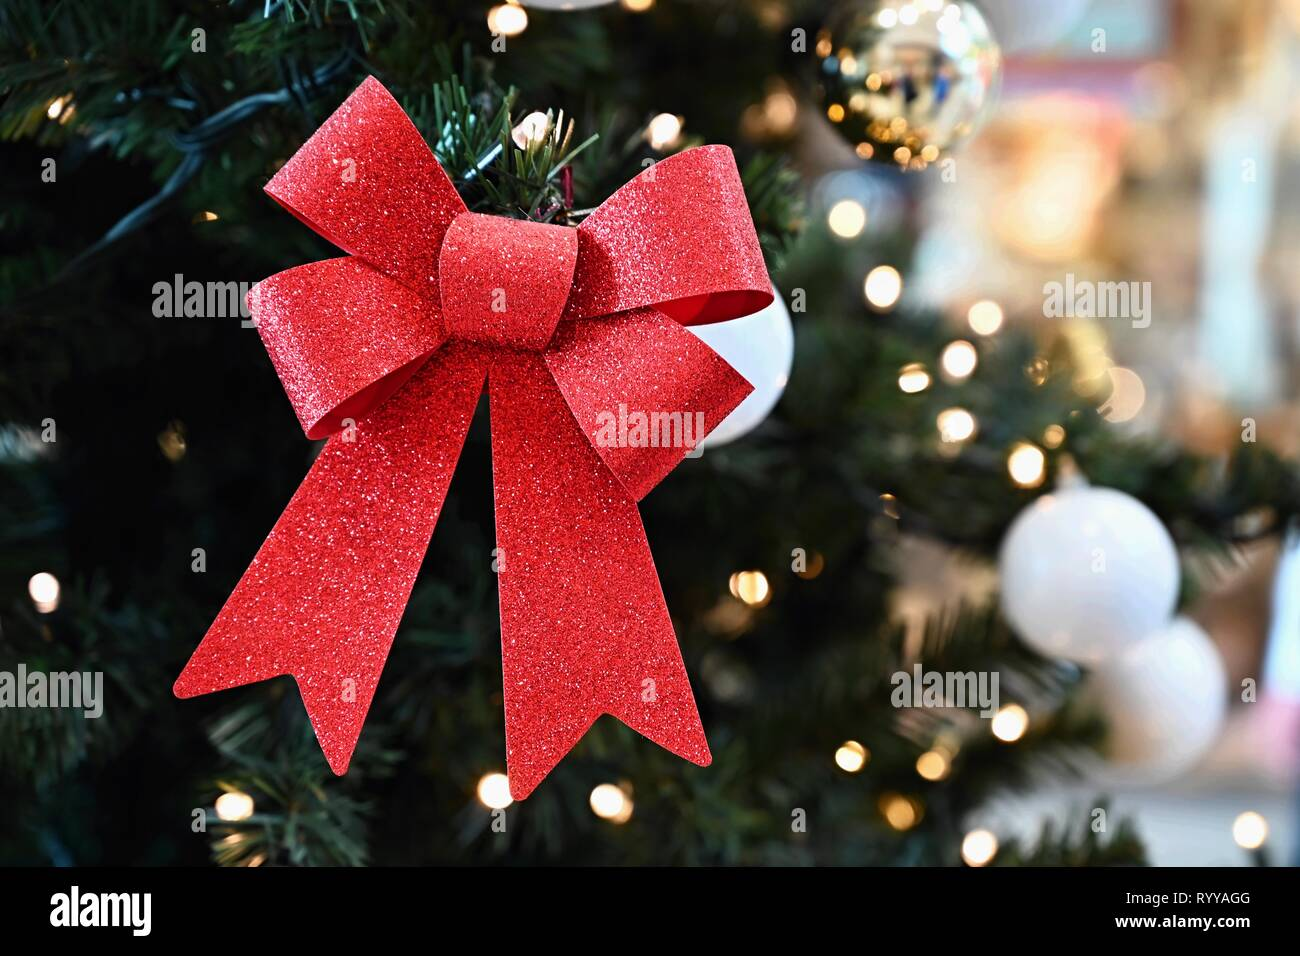 Beautiful Colorful Christmas Decorations Christmas Tree Concept For Winter Time And Holiday Season Stock Photo Alamy